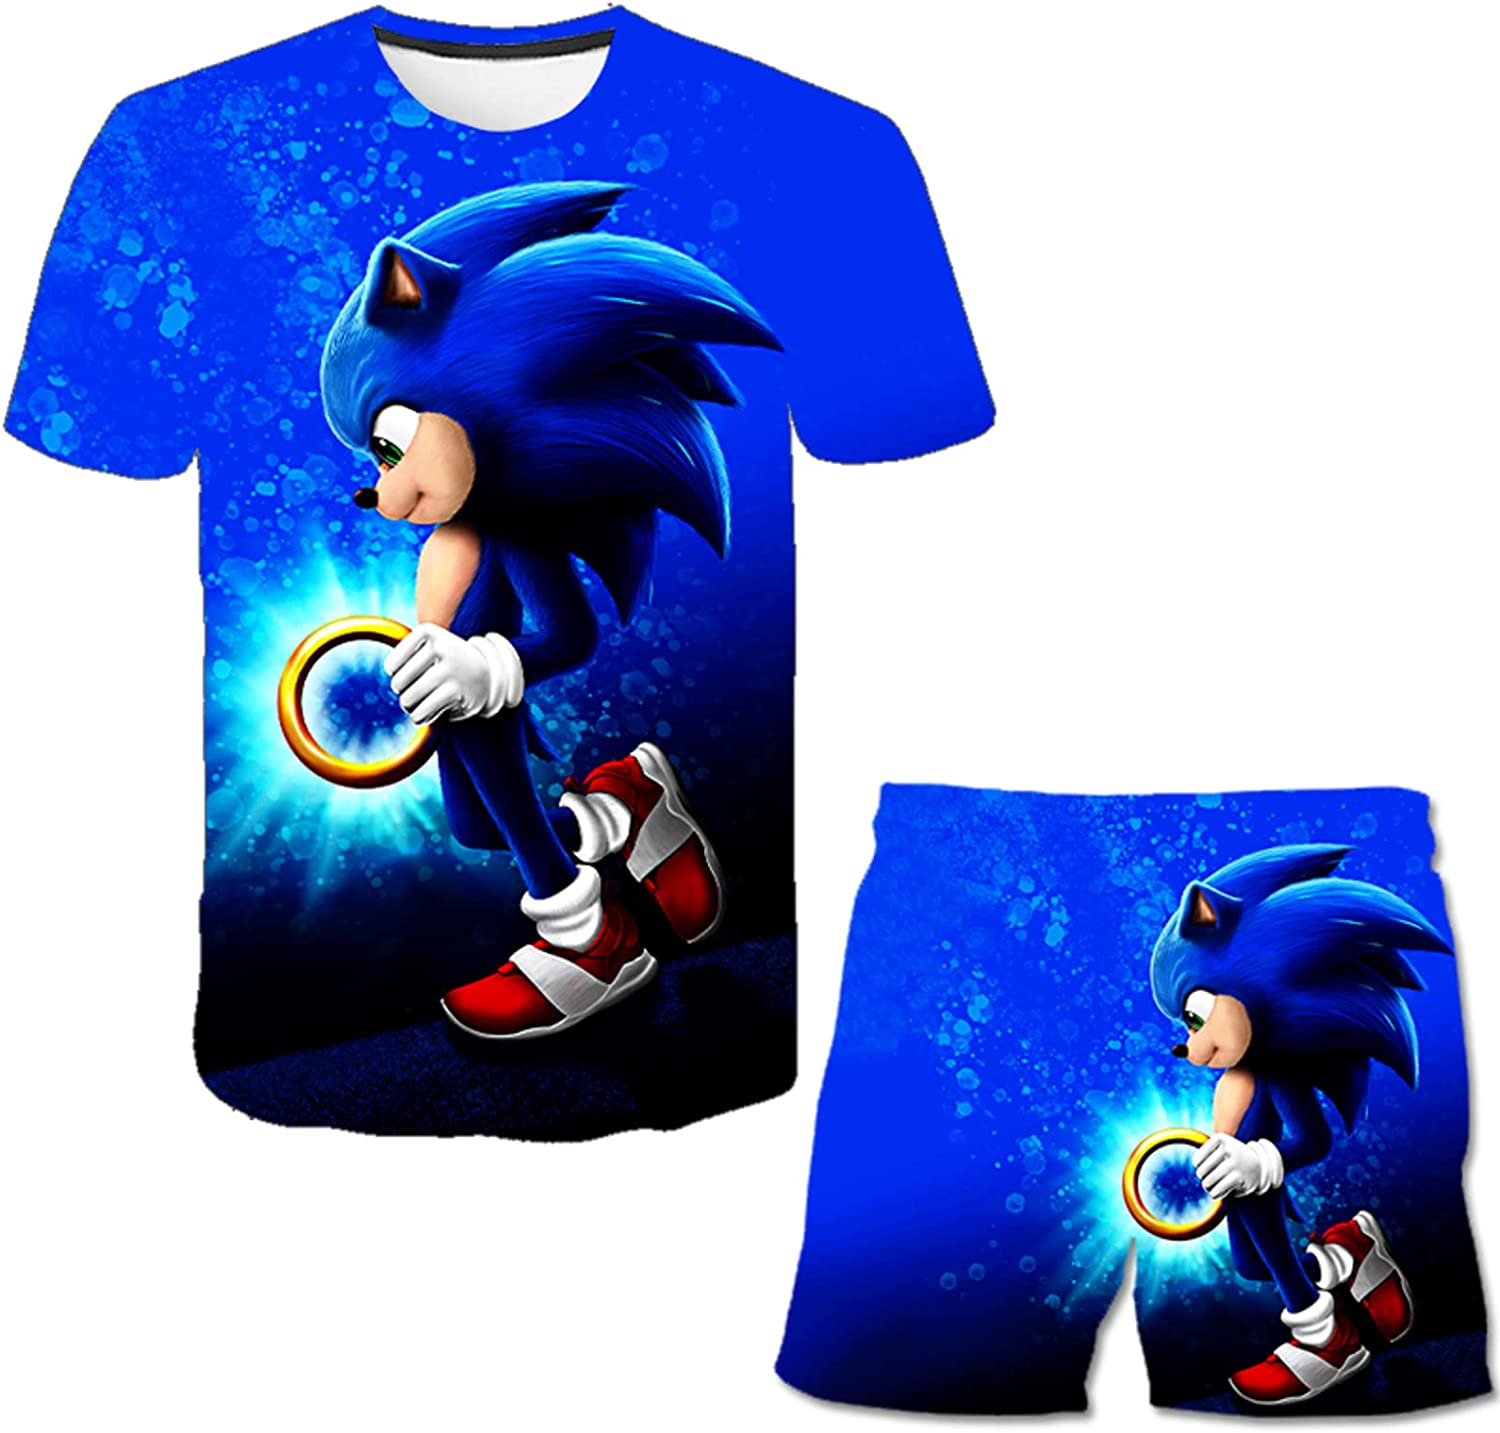 KLKNJC Youth Shirts Boys and Girls T-Shirt and Shorts 3D Printed Sports Short Sleeve Shorts Suit for Kids Teens